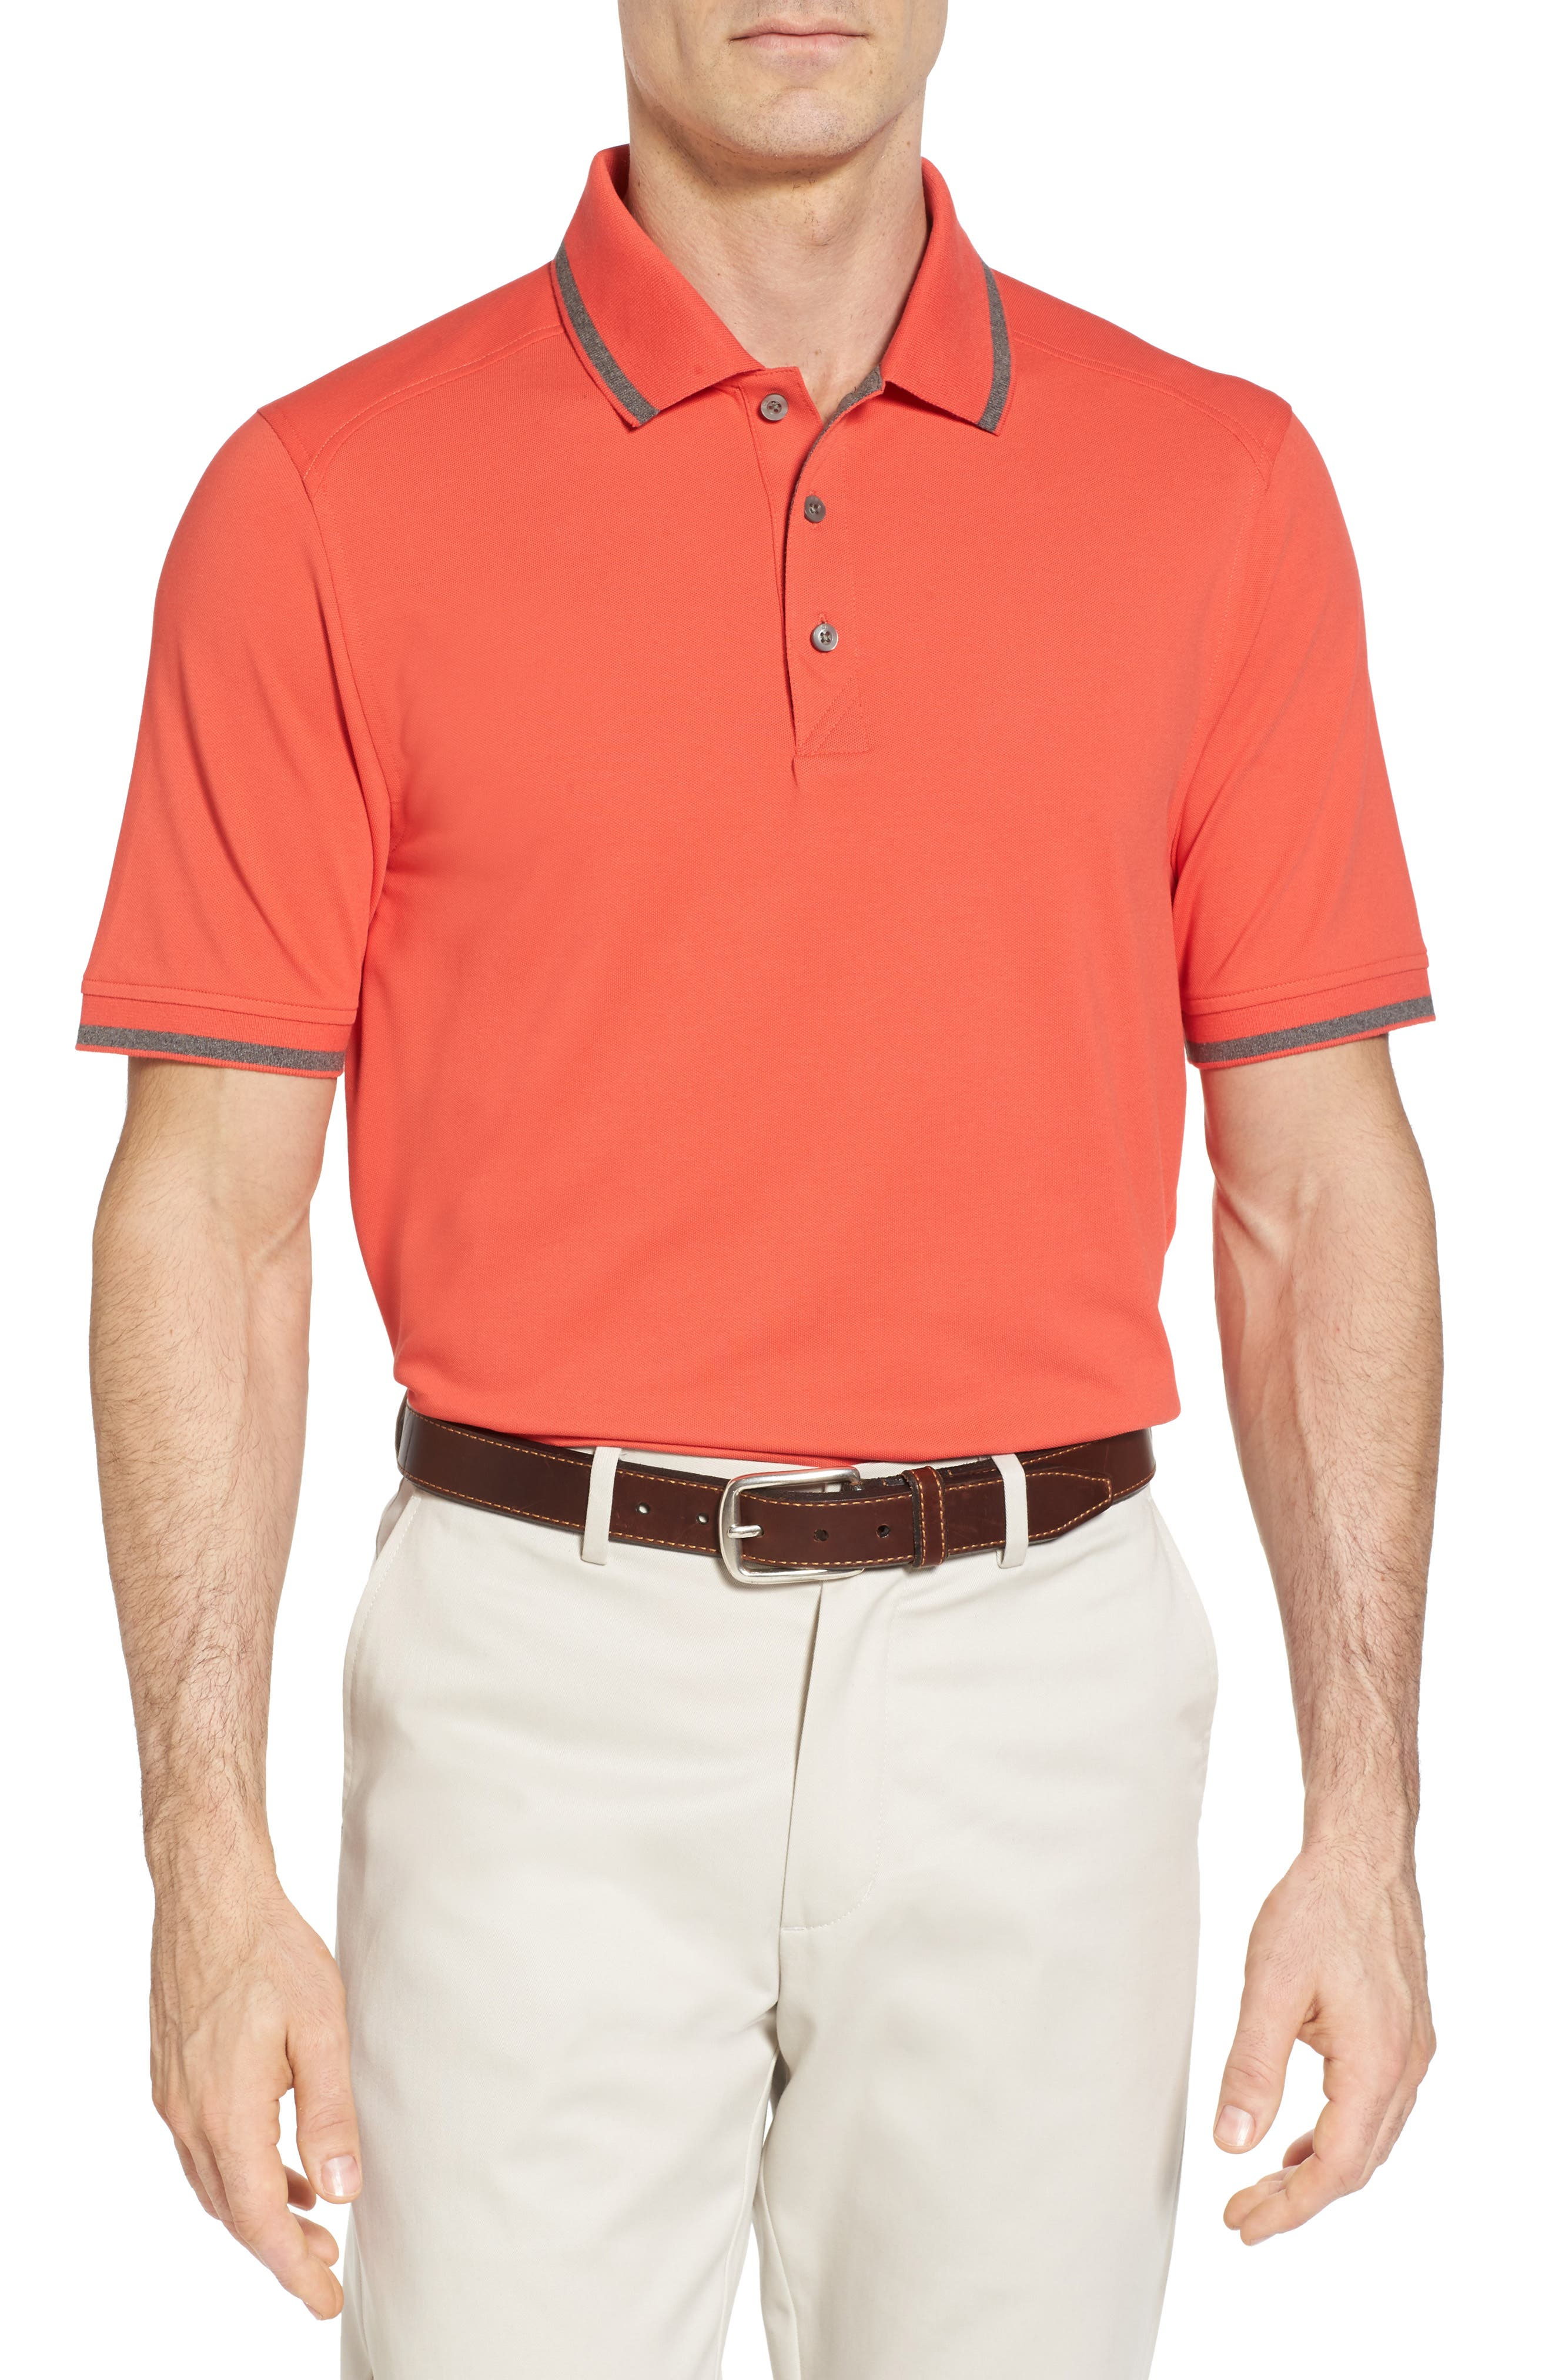 Main Image - Cutter & Buck Tipped DryTec Polo